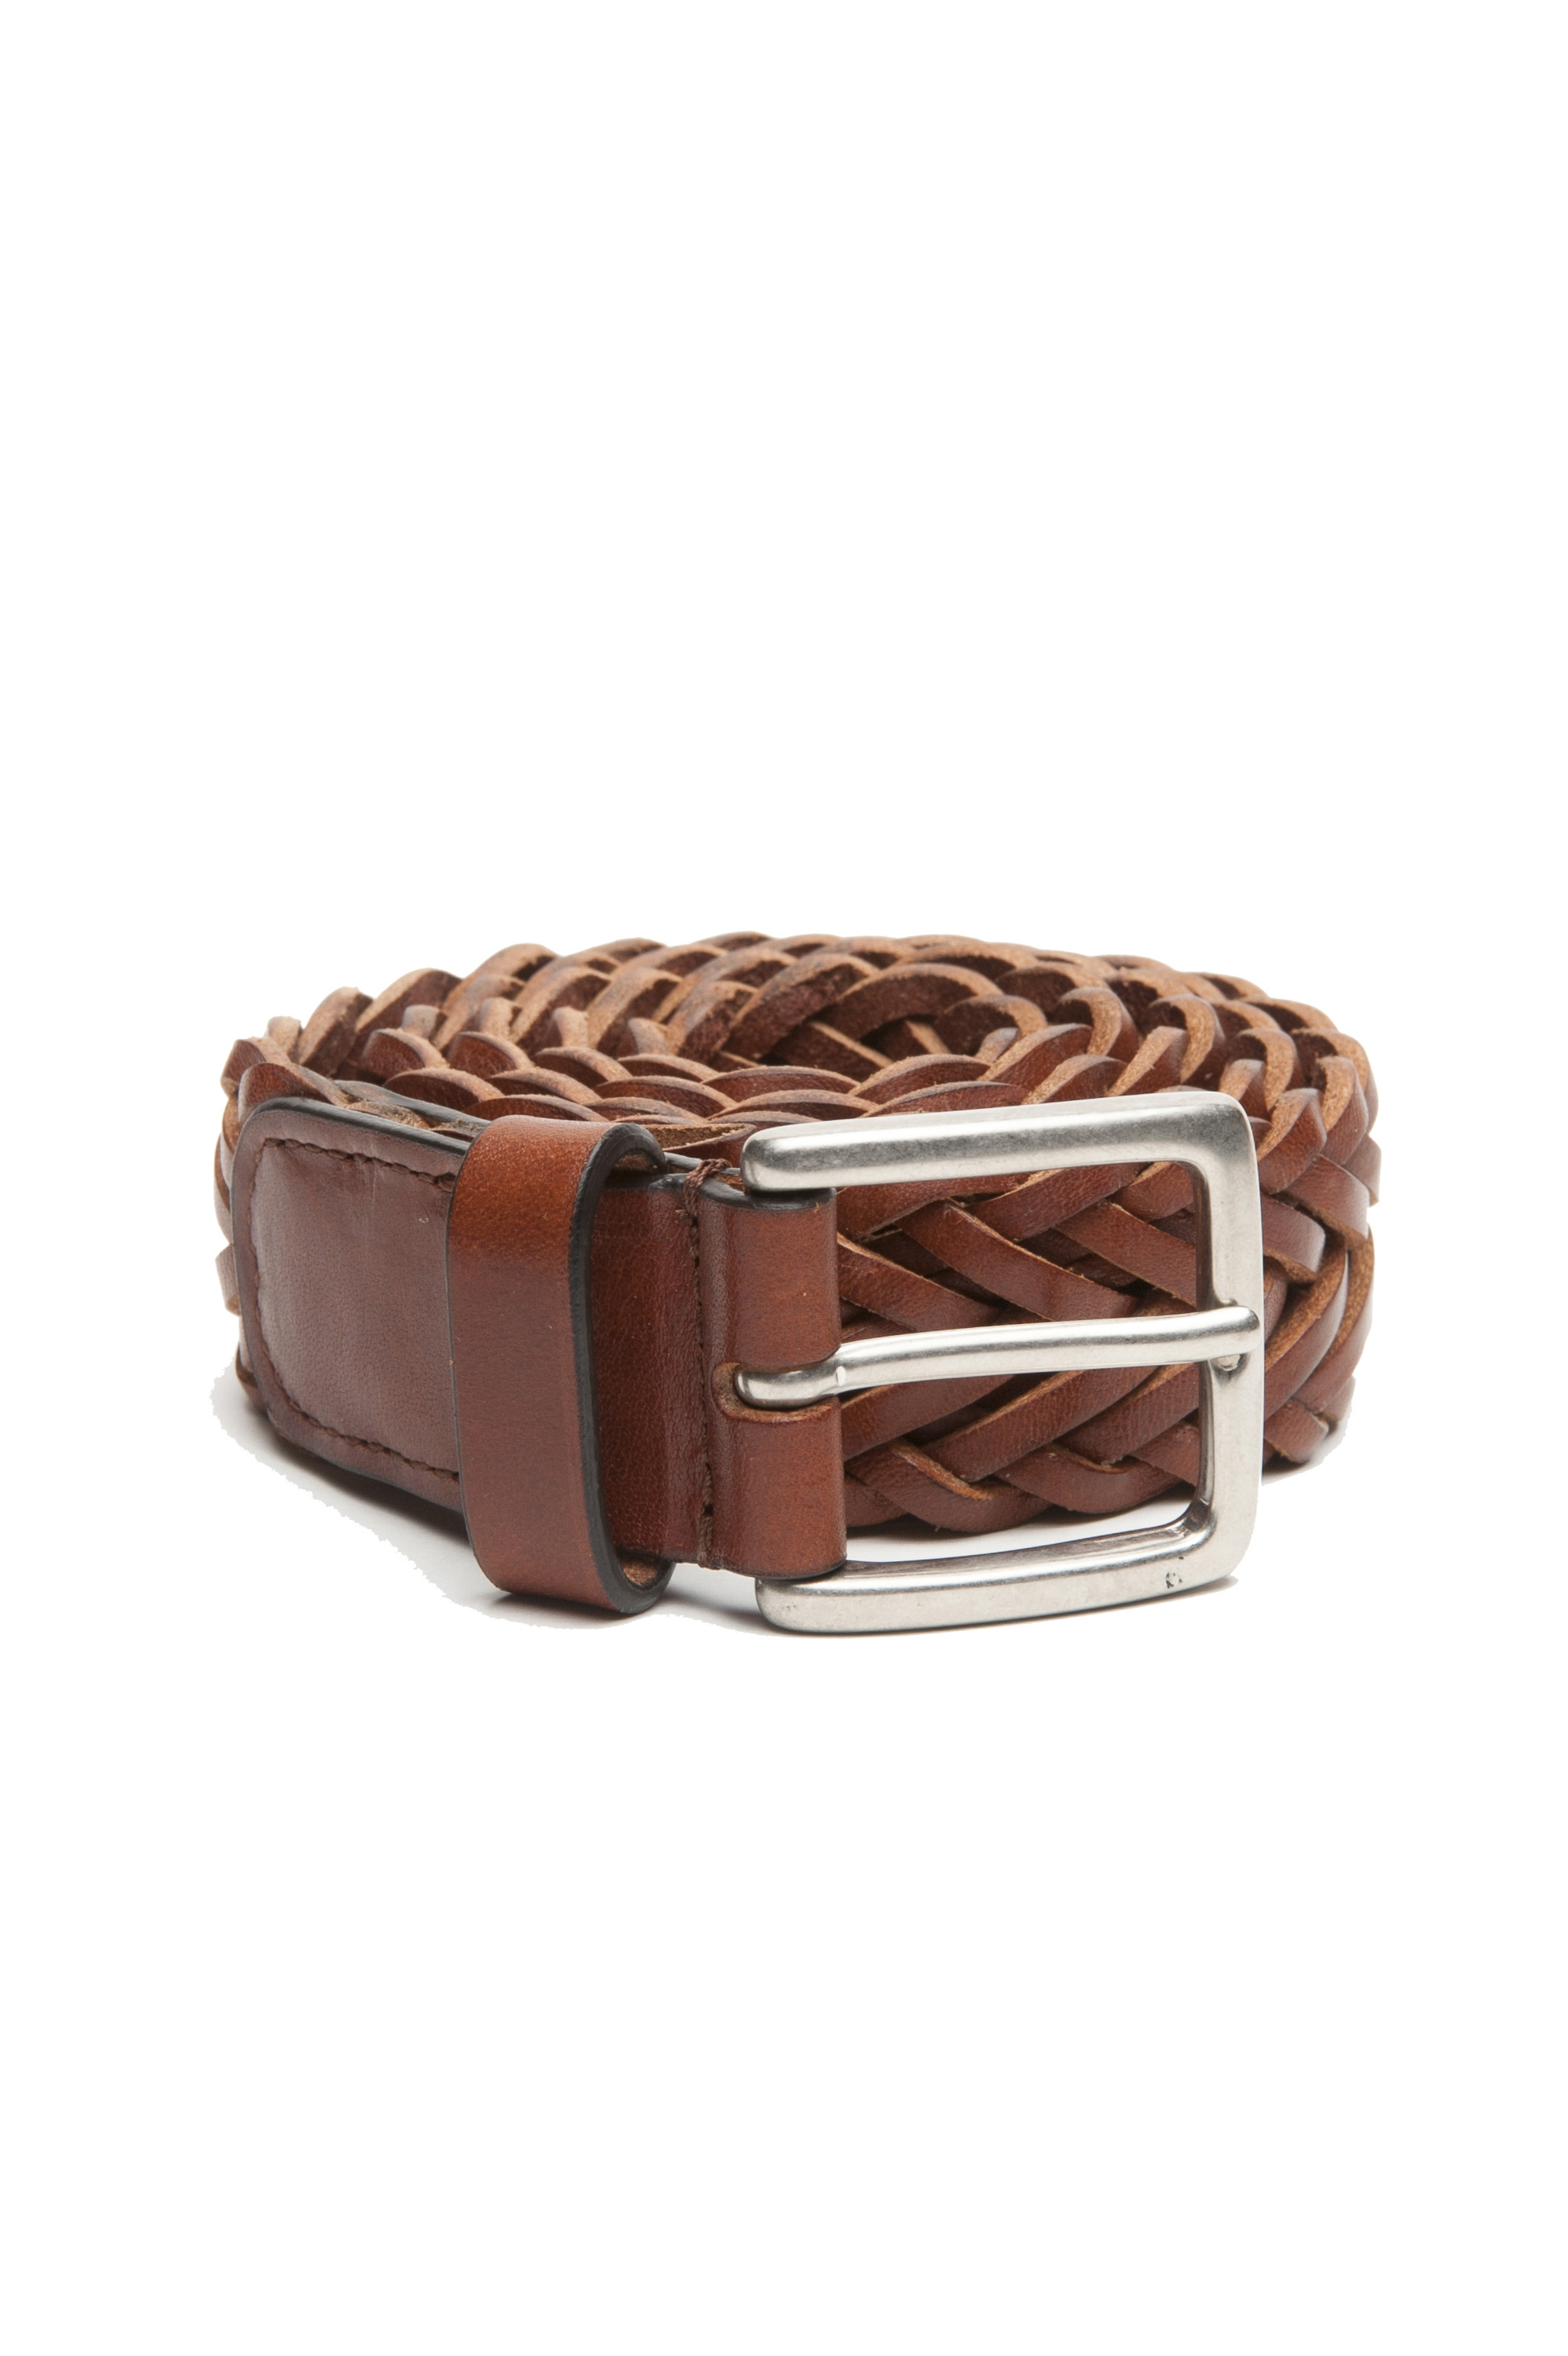 SBU 03021_2020AW Braided leather belt 1.4 inches cuir 01